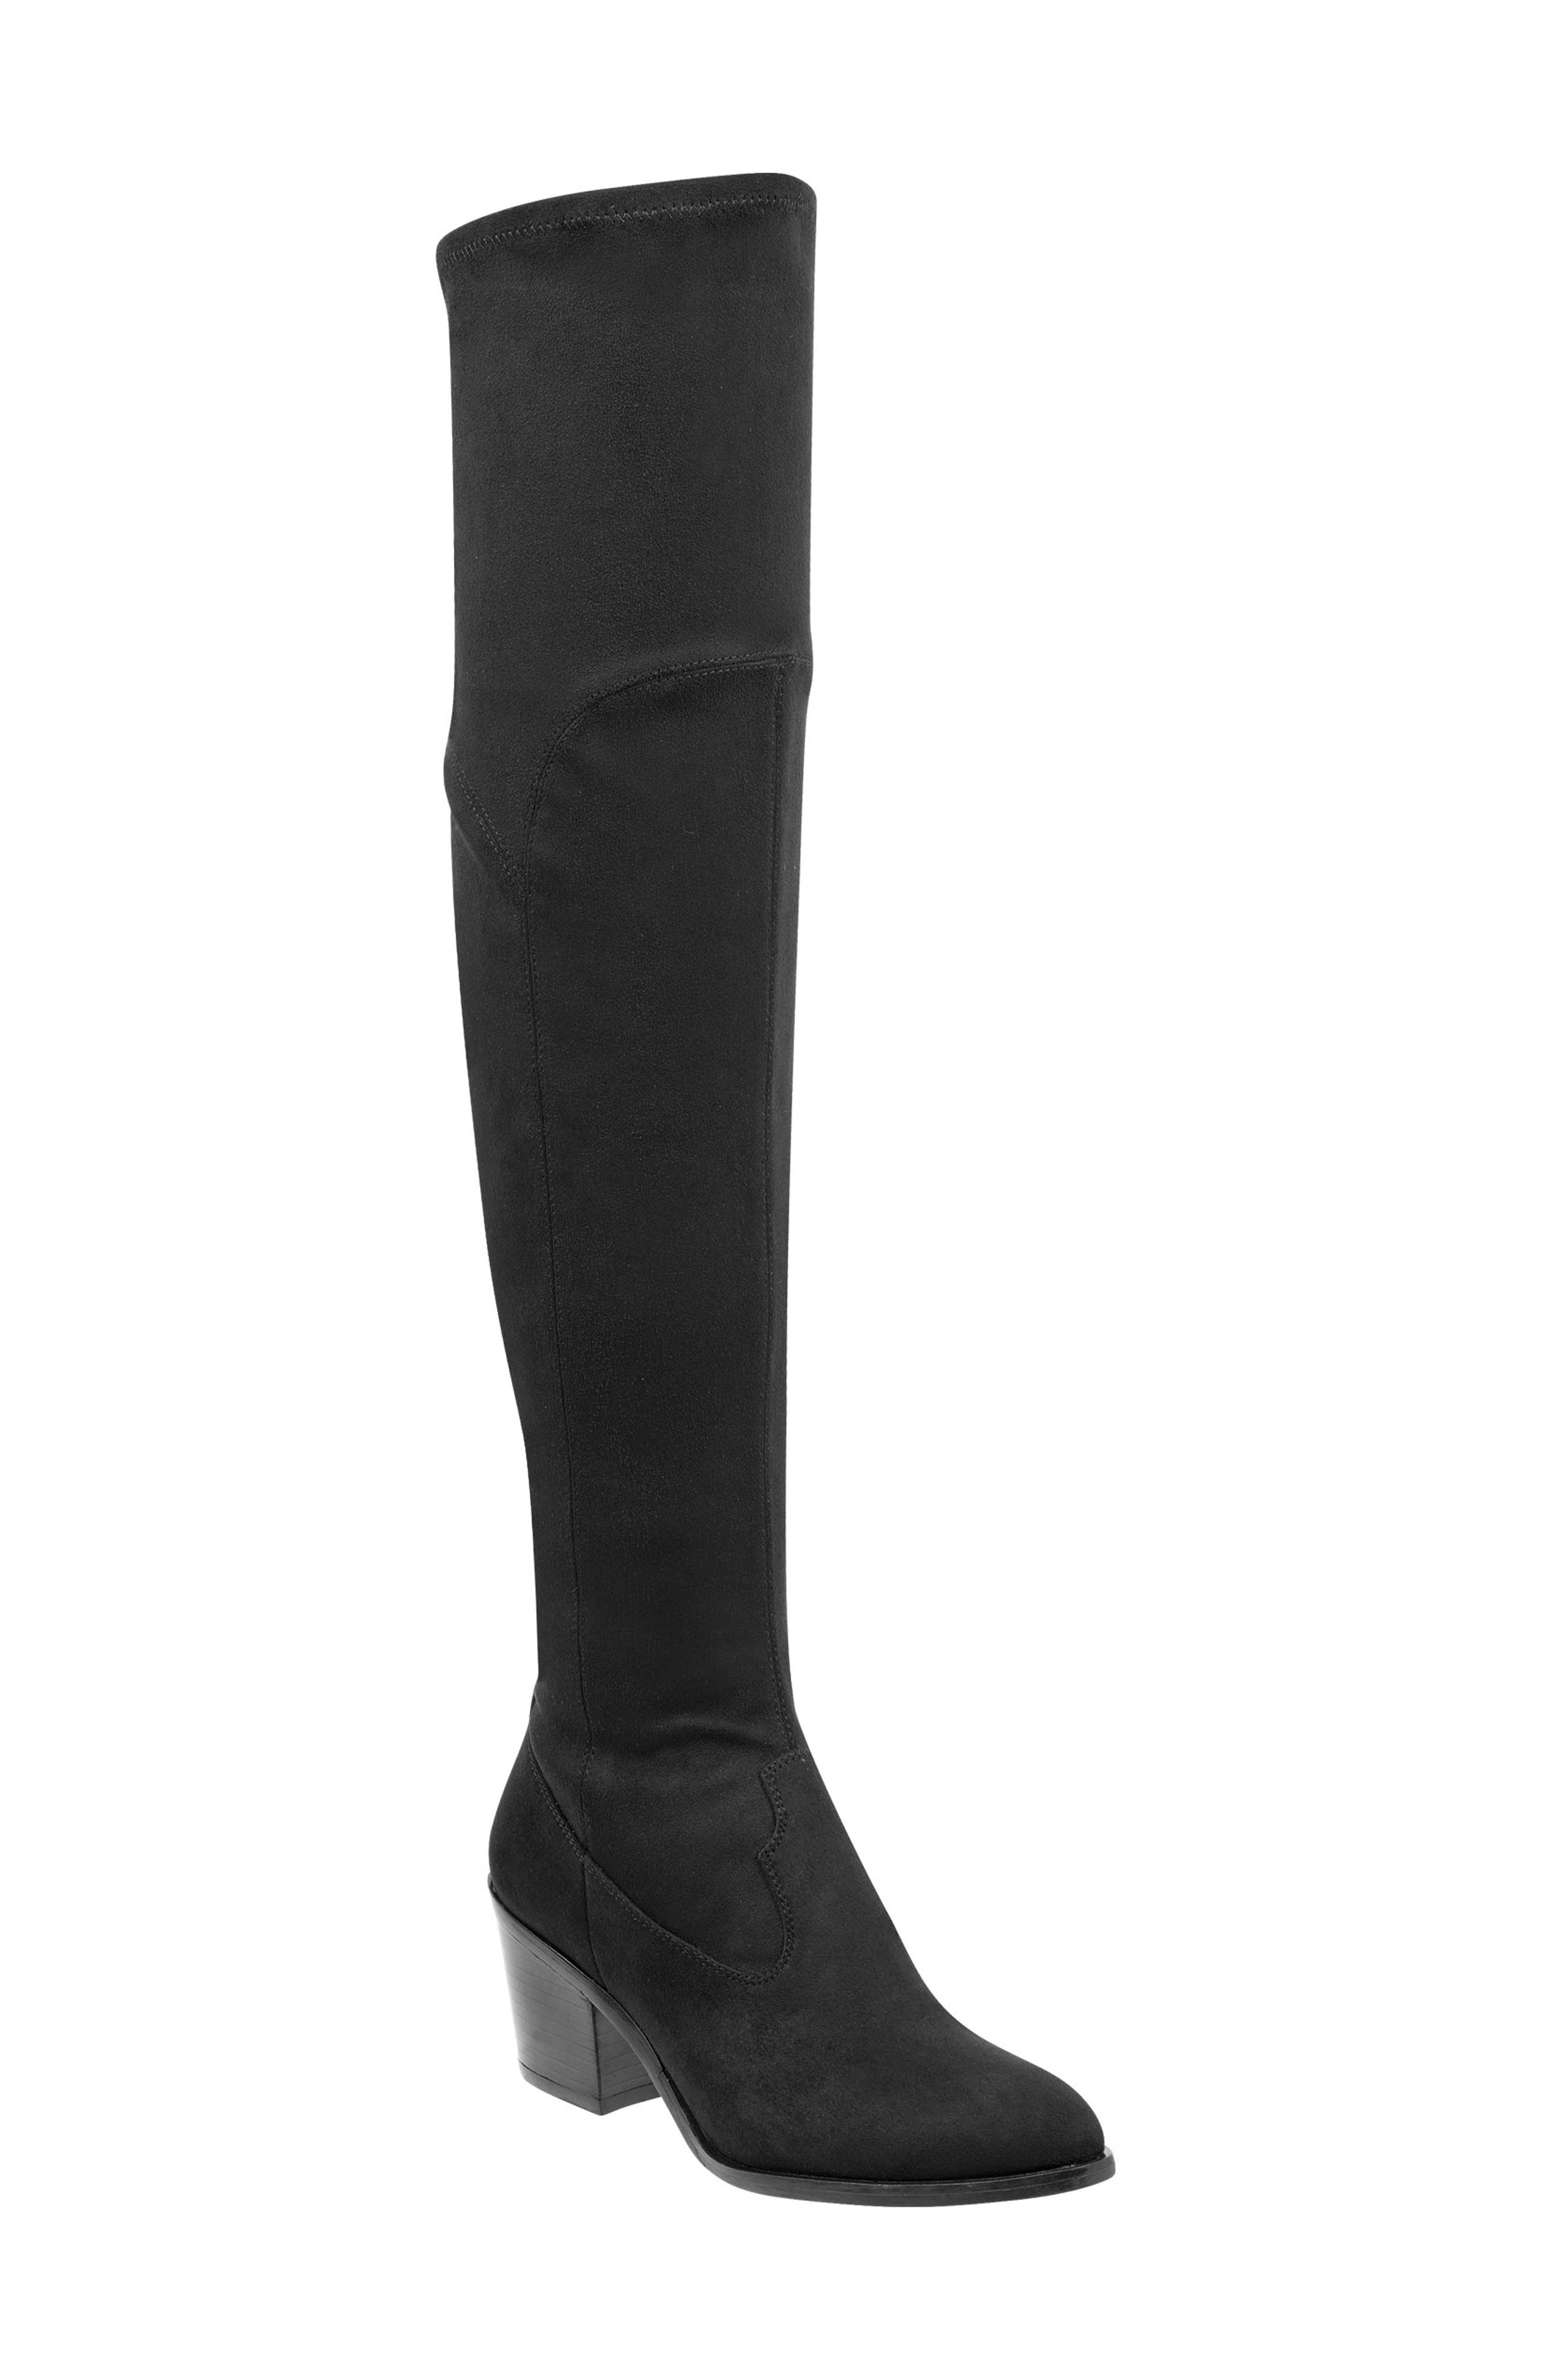 Rossa Over the Knee Boot,                             Main thumbnail 1, color,                             BLACK SUEDE